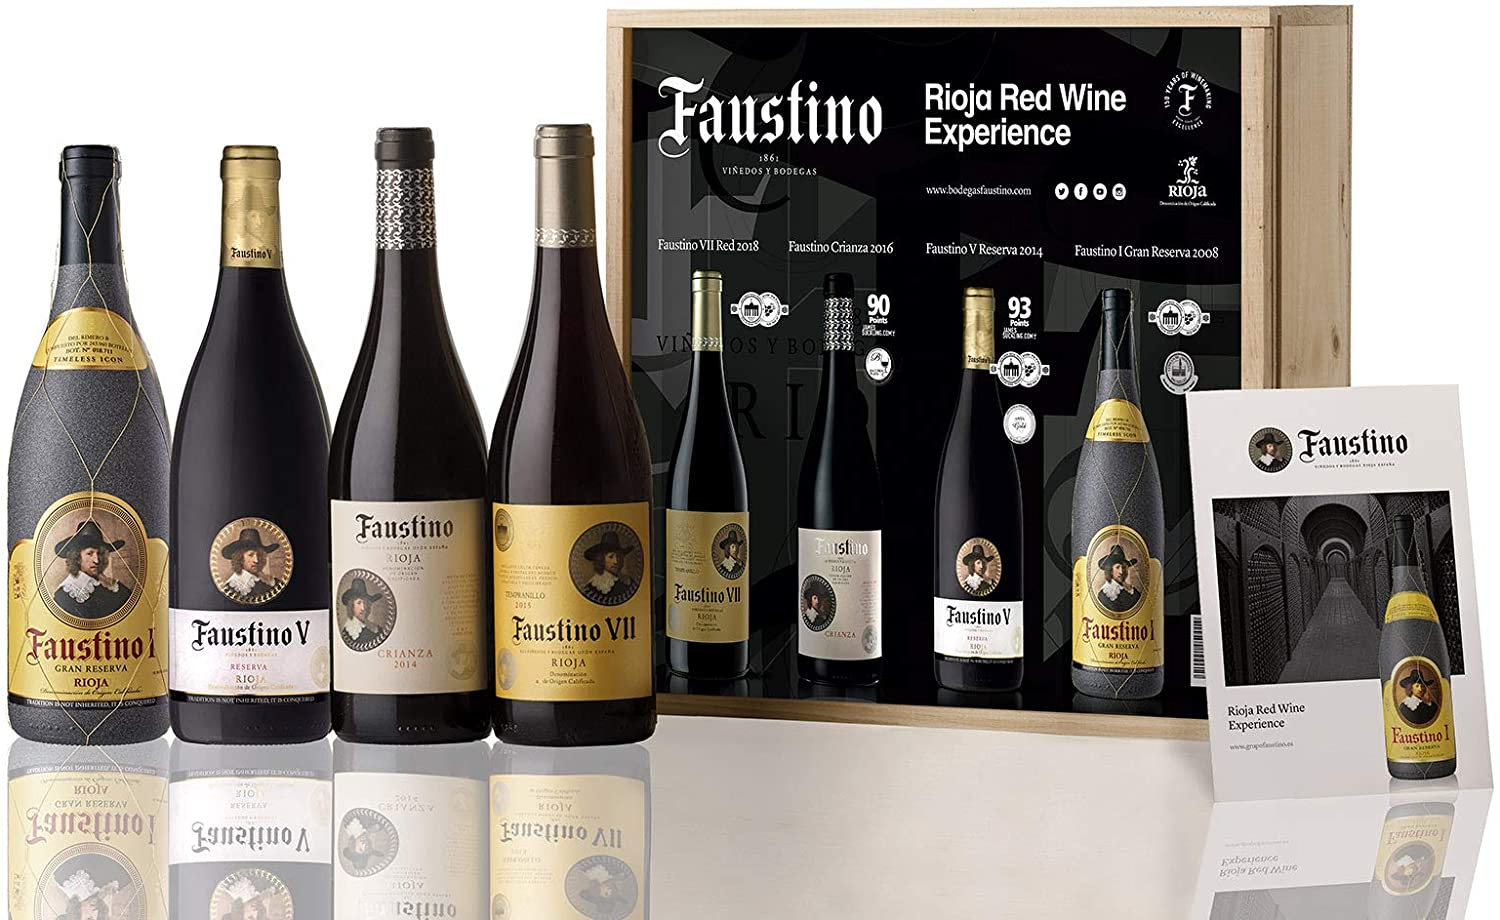 Faustino Red Wine Experience